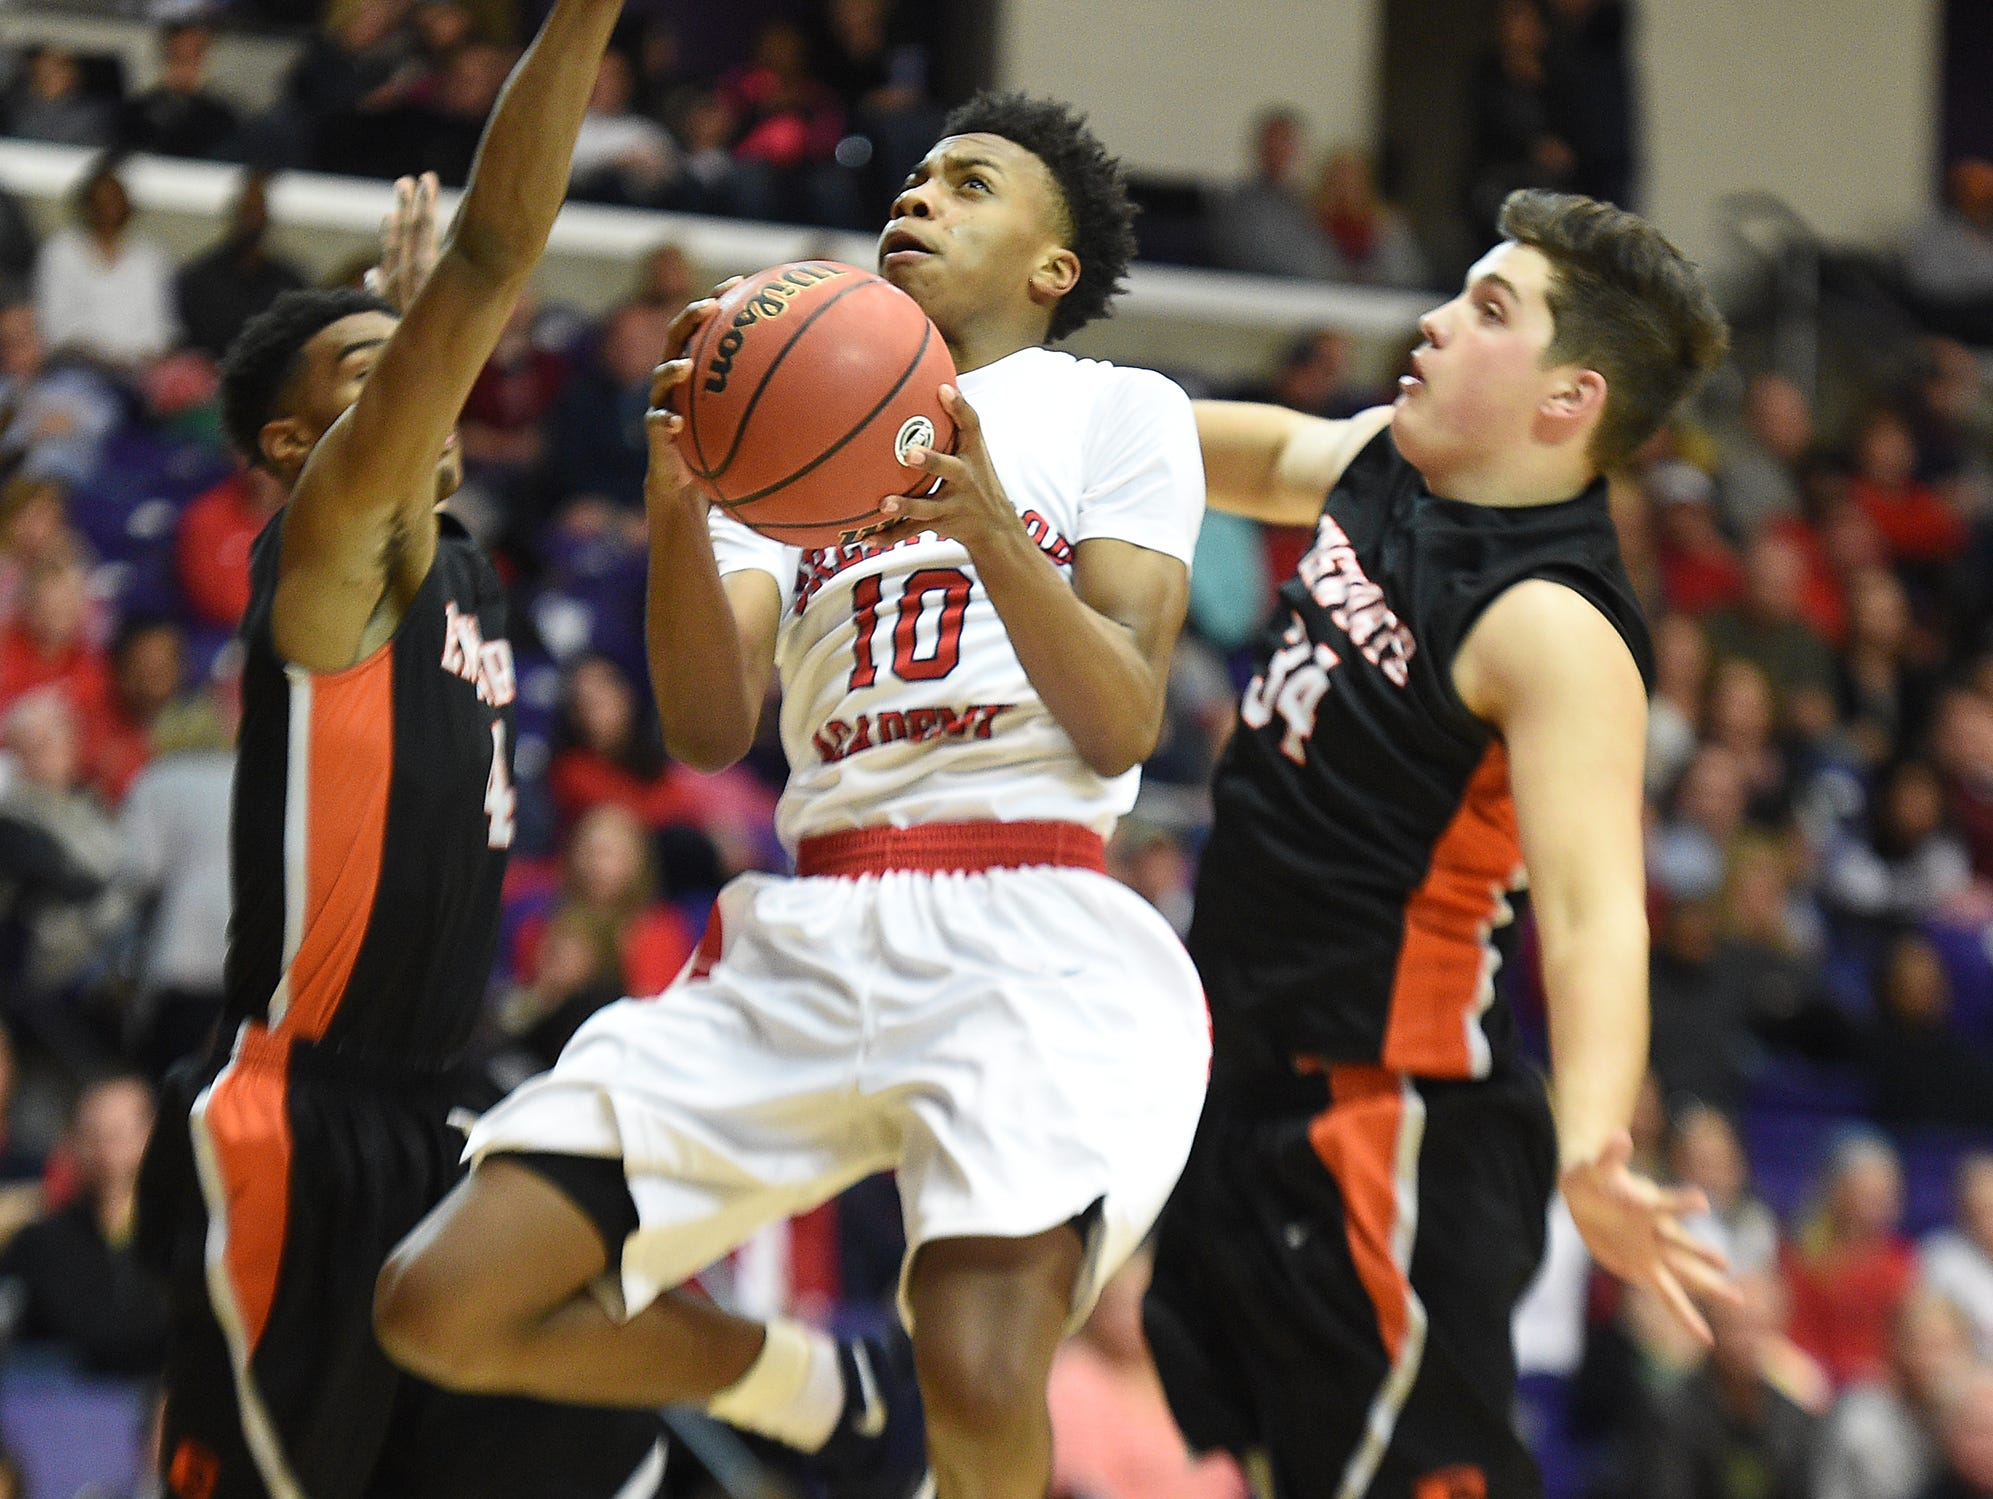 Sophomore Mr. Basketball finalist Darius Garland (10) helped lead Brentwood Academy to a second straight Division II-AA champion on Saturday.